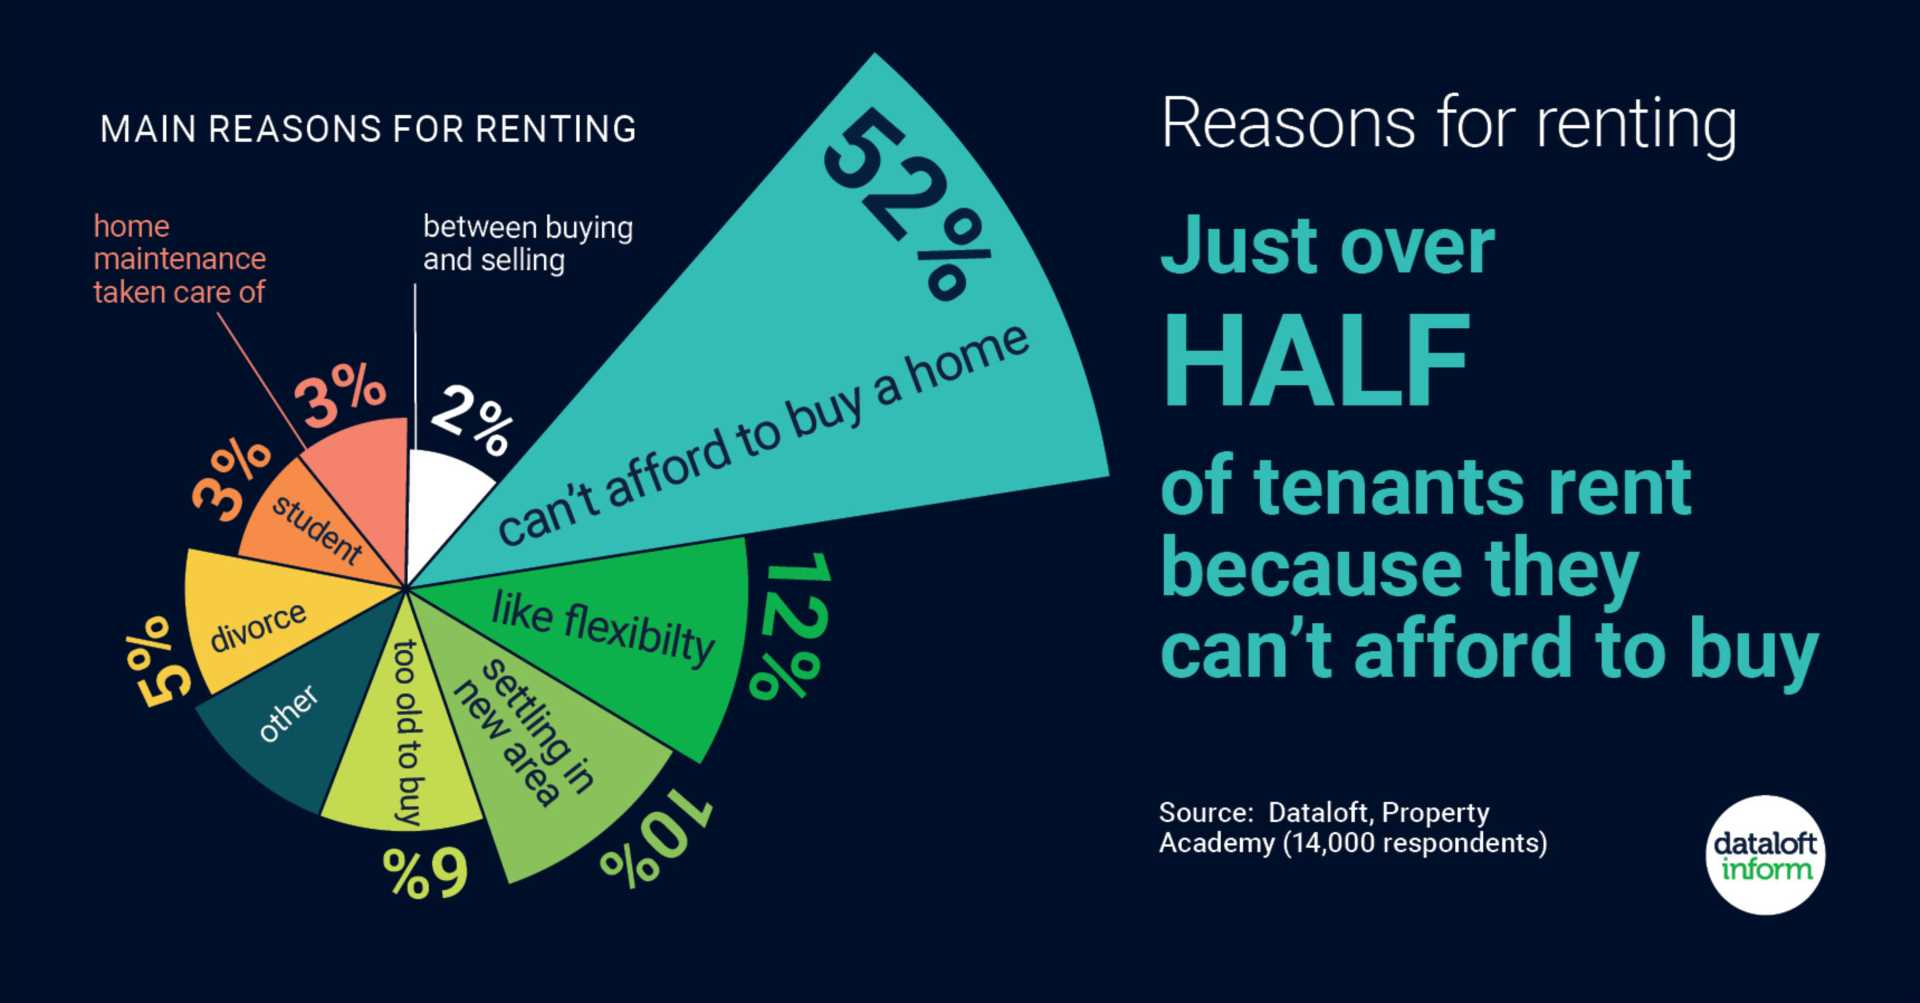 Reasons for renting